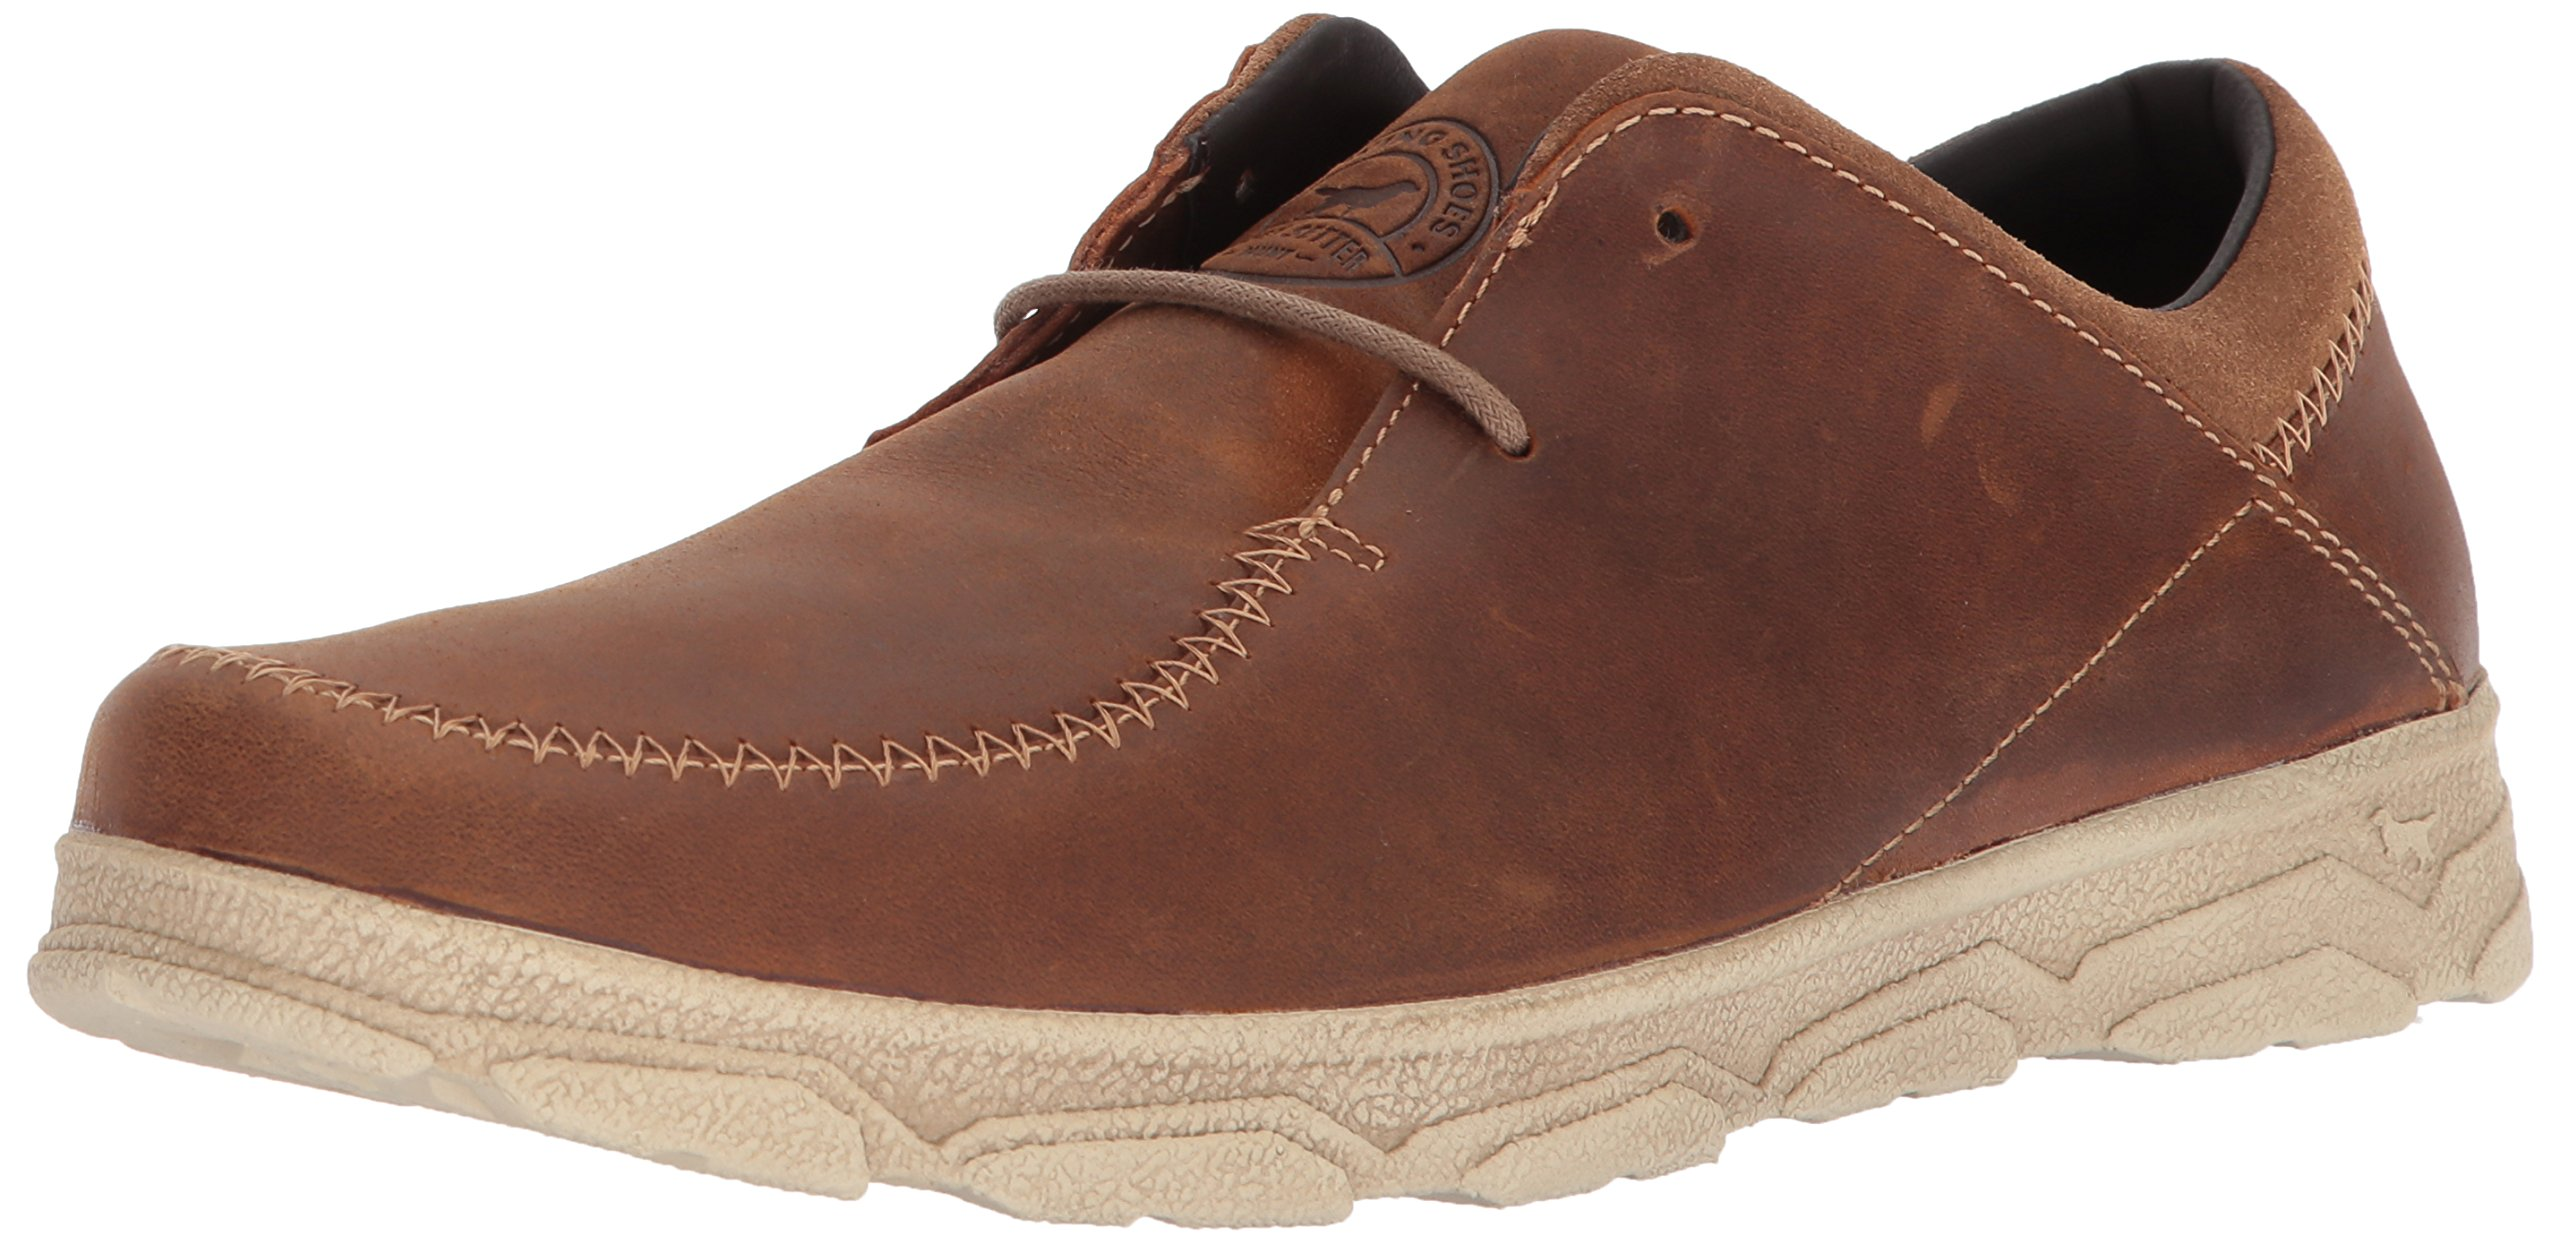 Irish Setter Men's Traveler 3804 Oxford Boot, Tan, 13 D US by Irish Setter